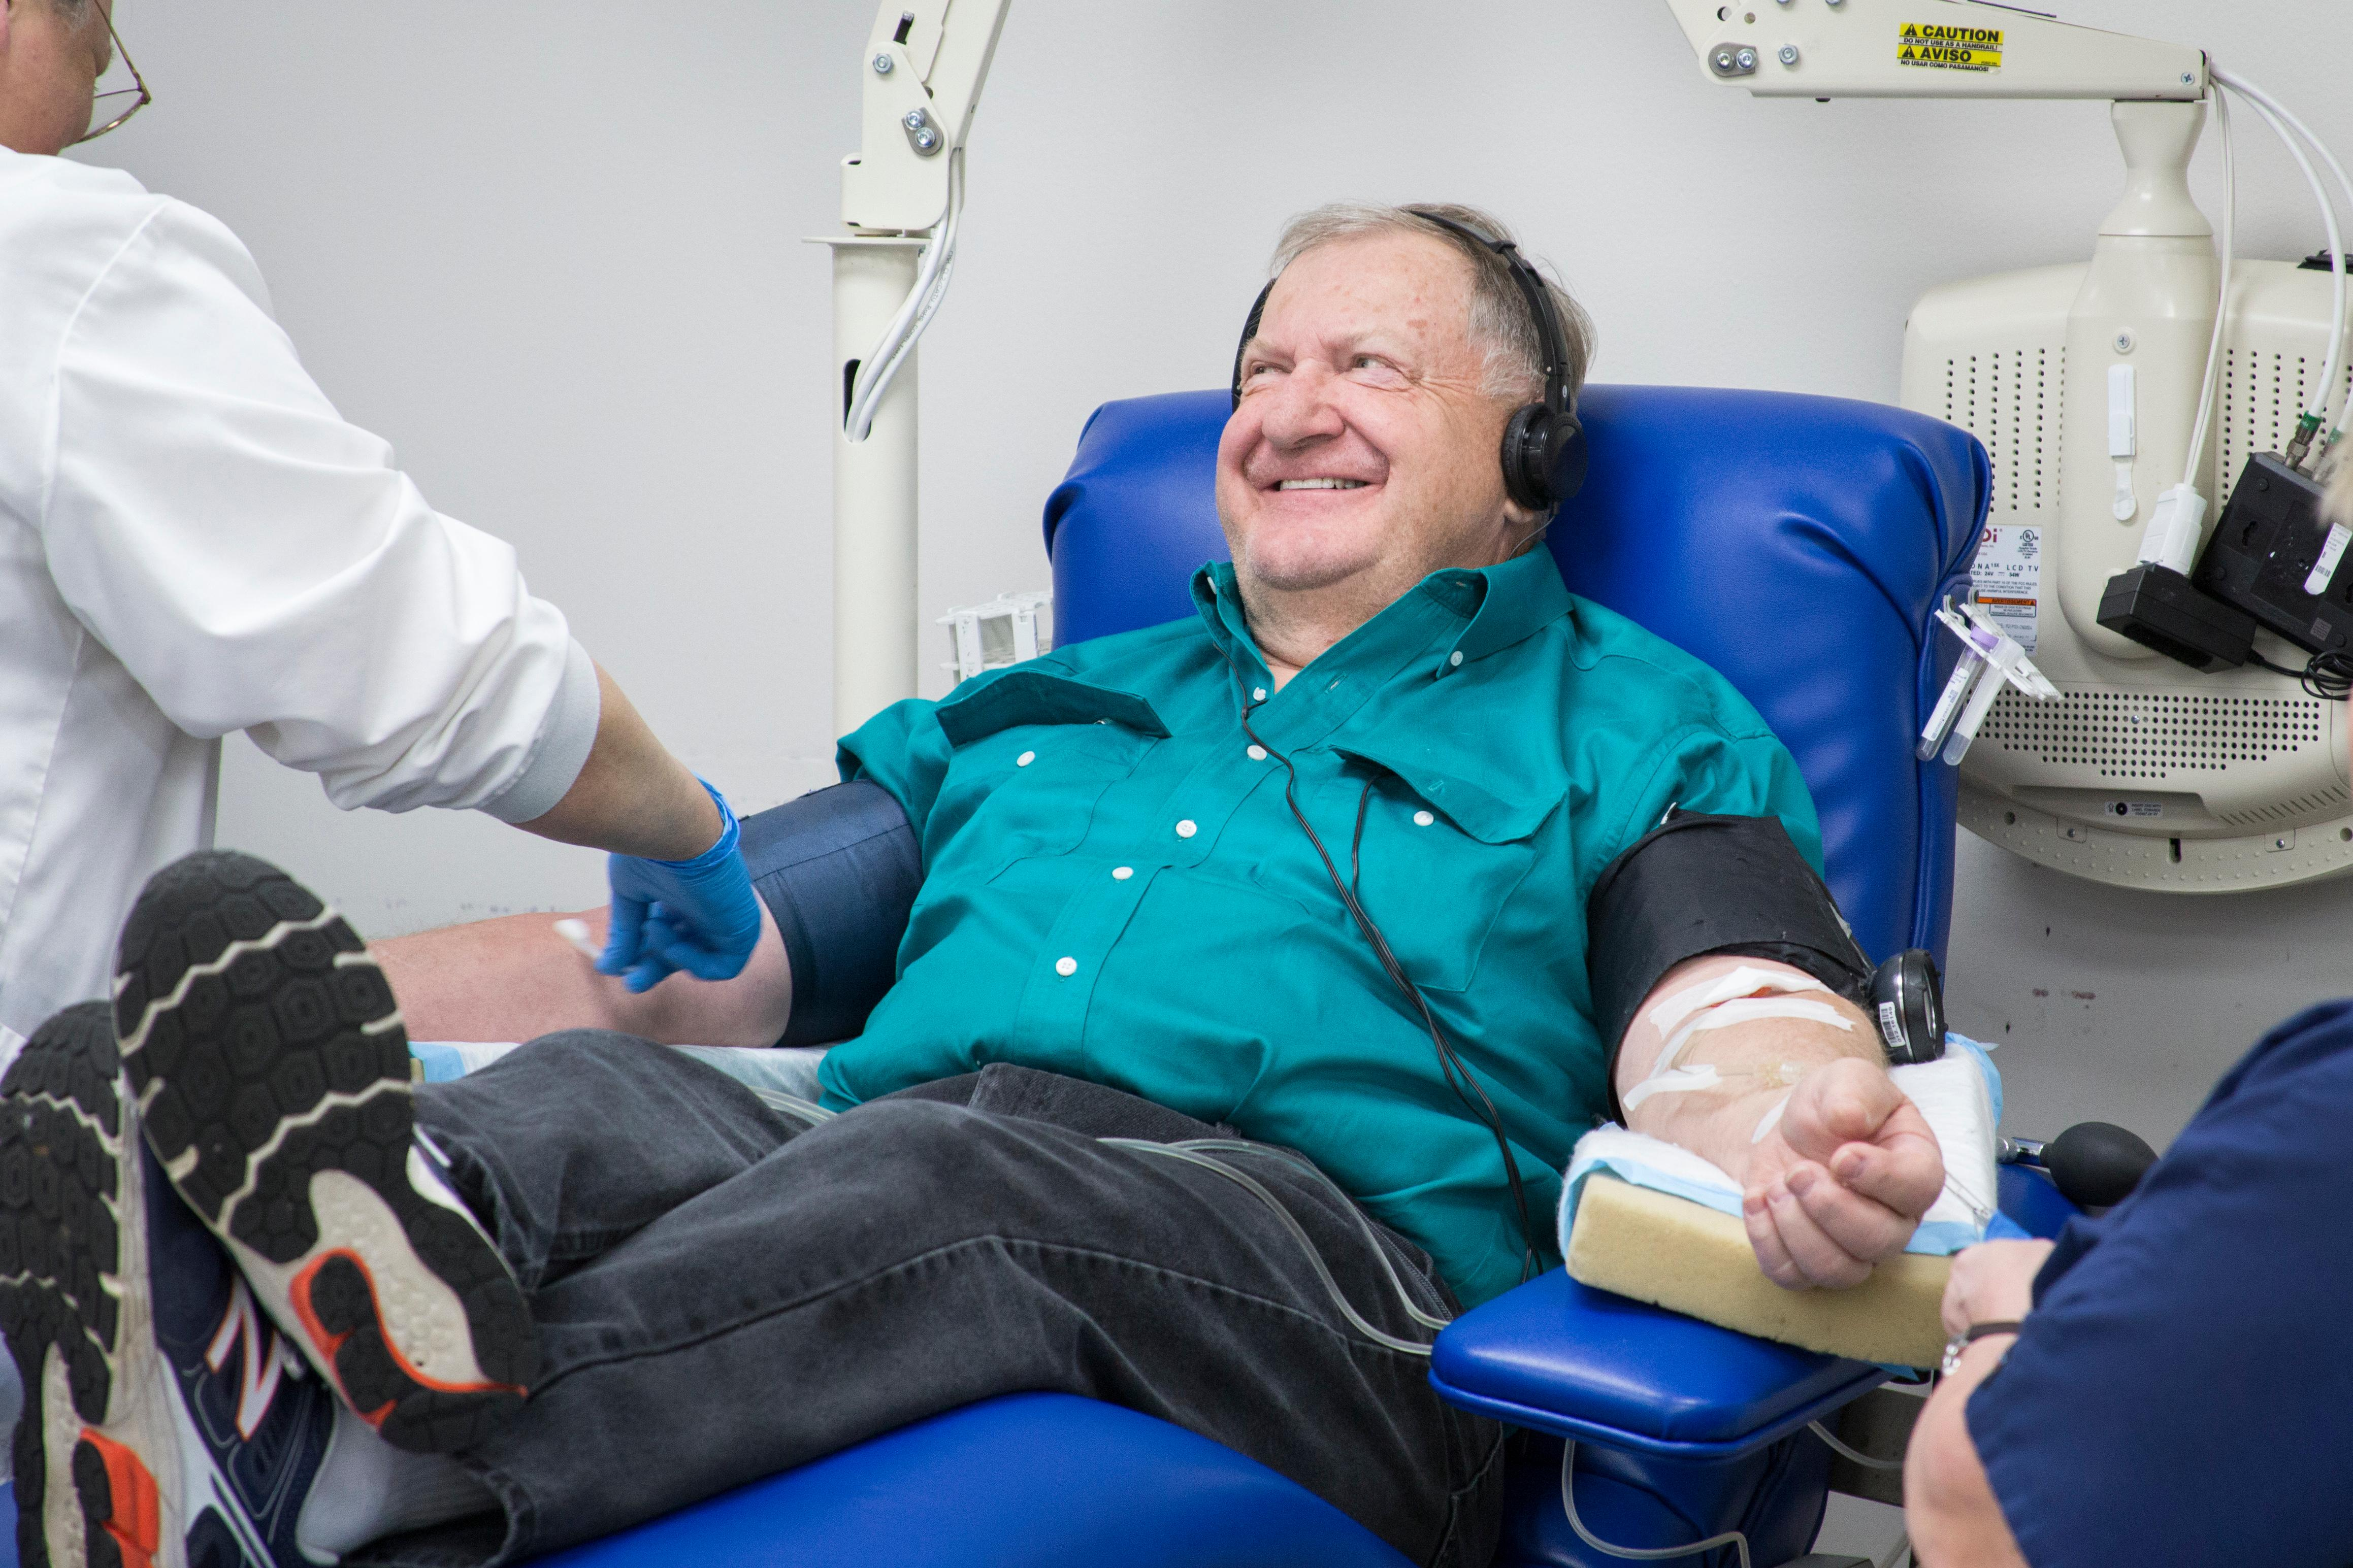 Dennis Clapper donates platelets via apheresis at the Charlotte, NC Donor Center. He started giving whole blood in the 1960s and switched to giving platelets in the late 1970s.